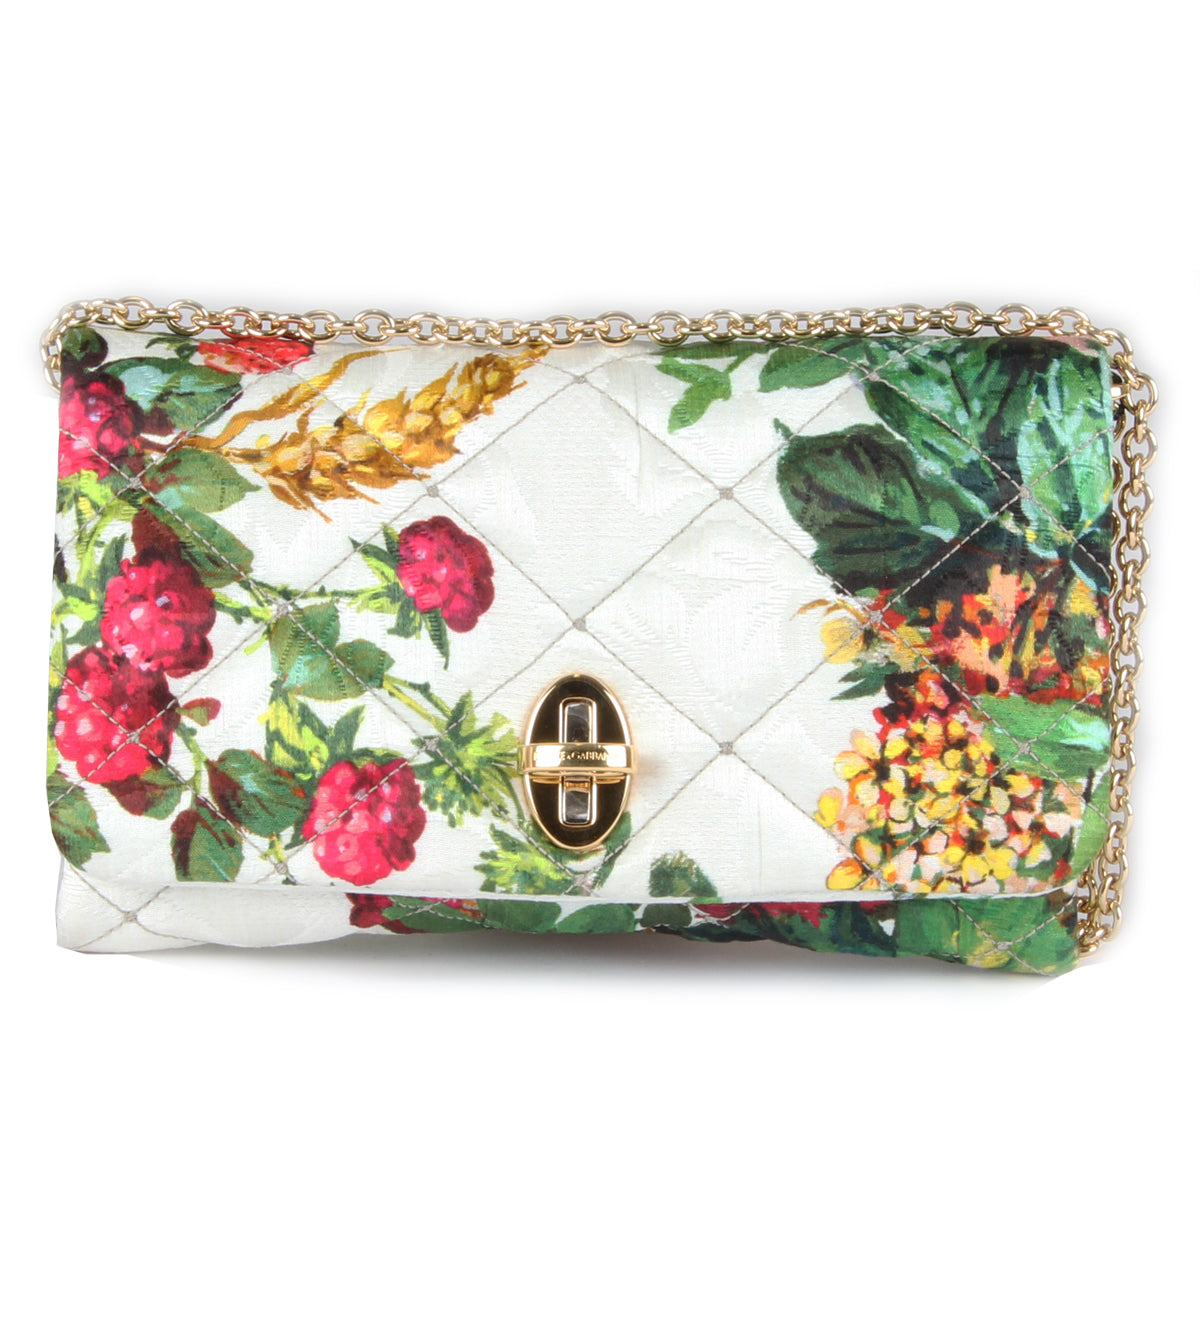 Fruit & floral print brocade clutch bag